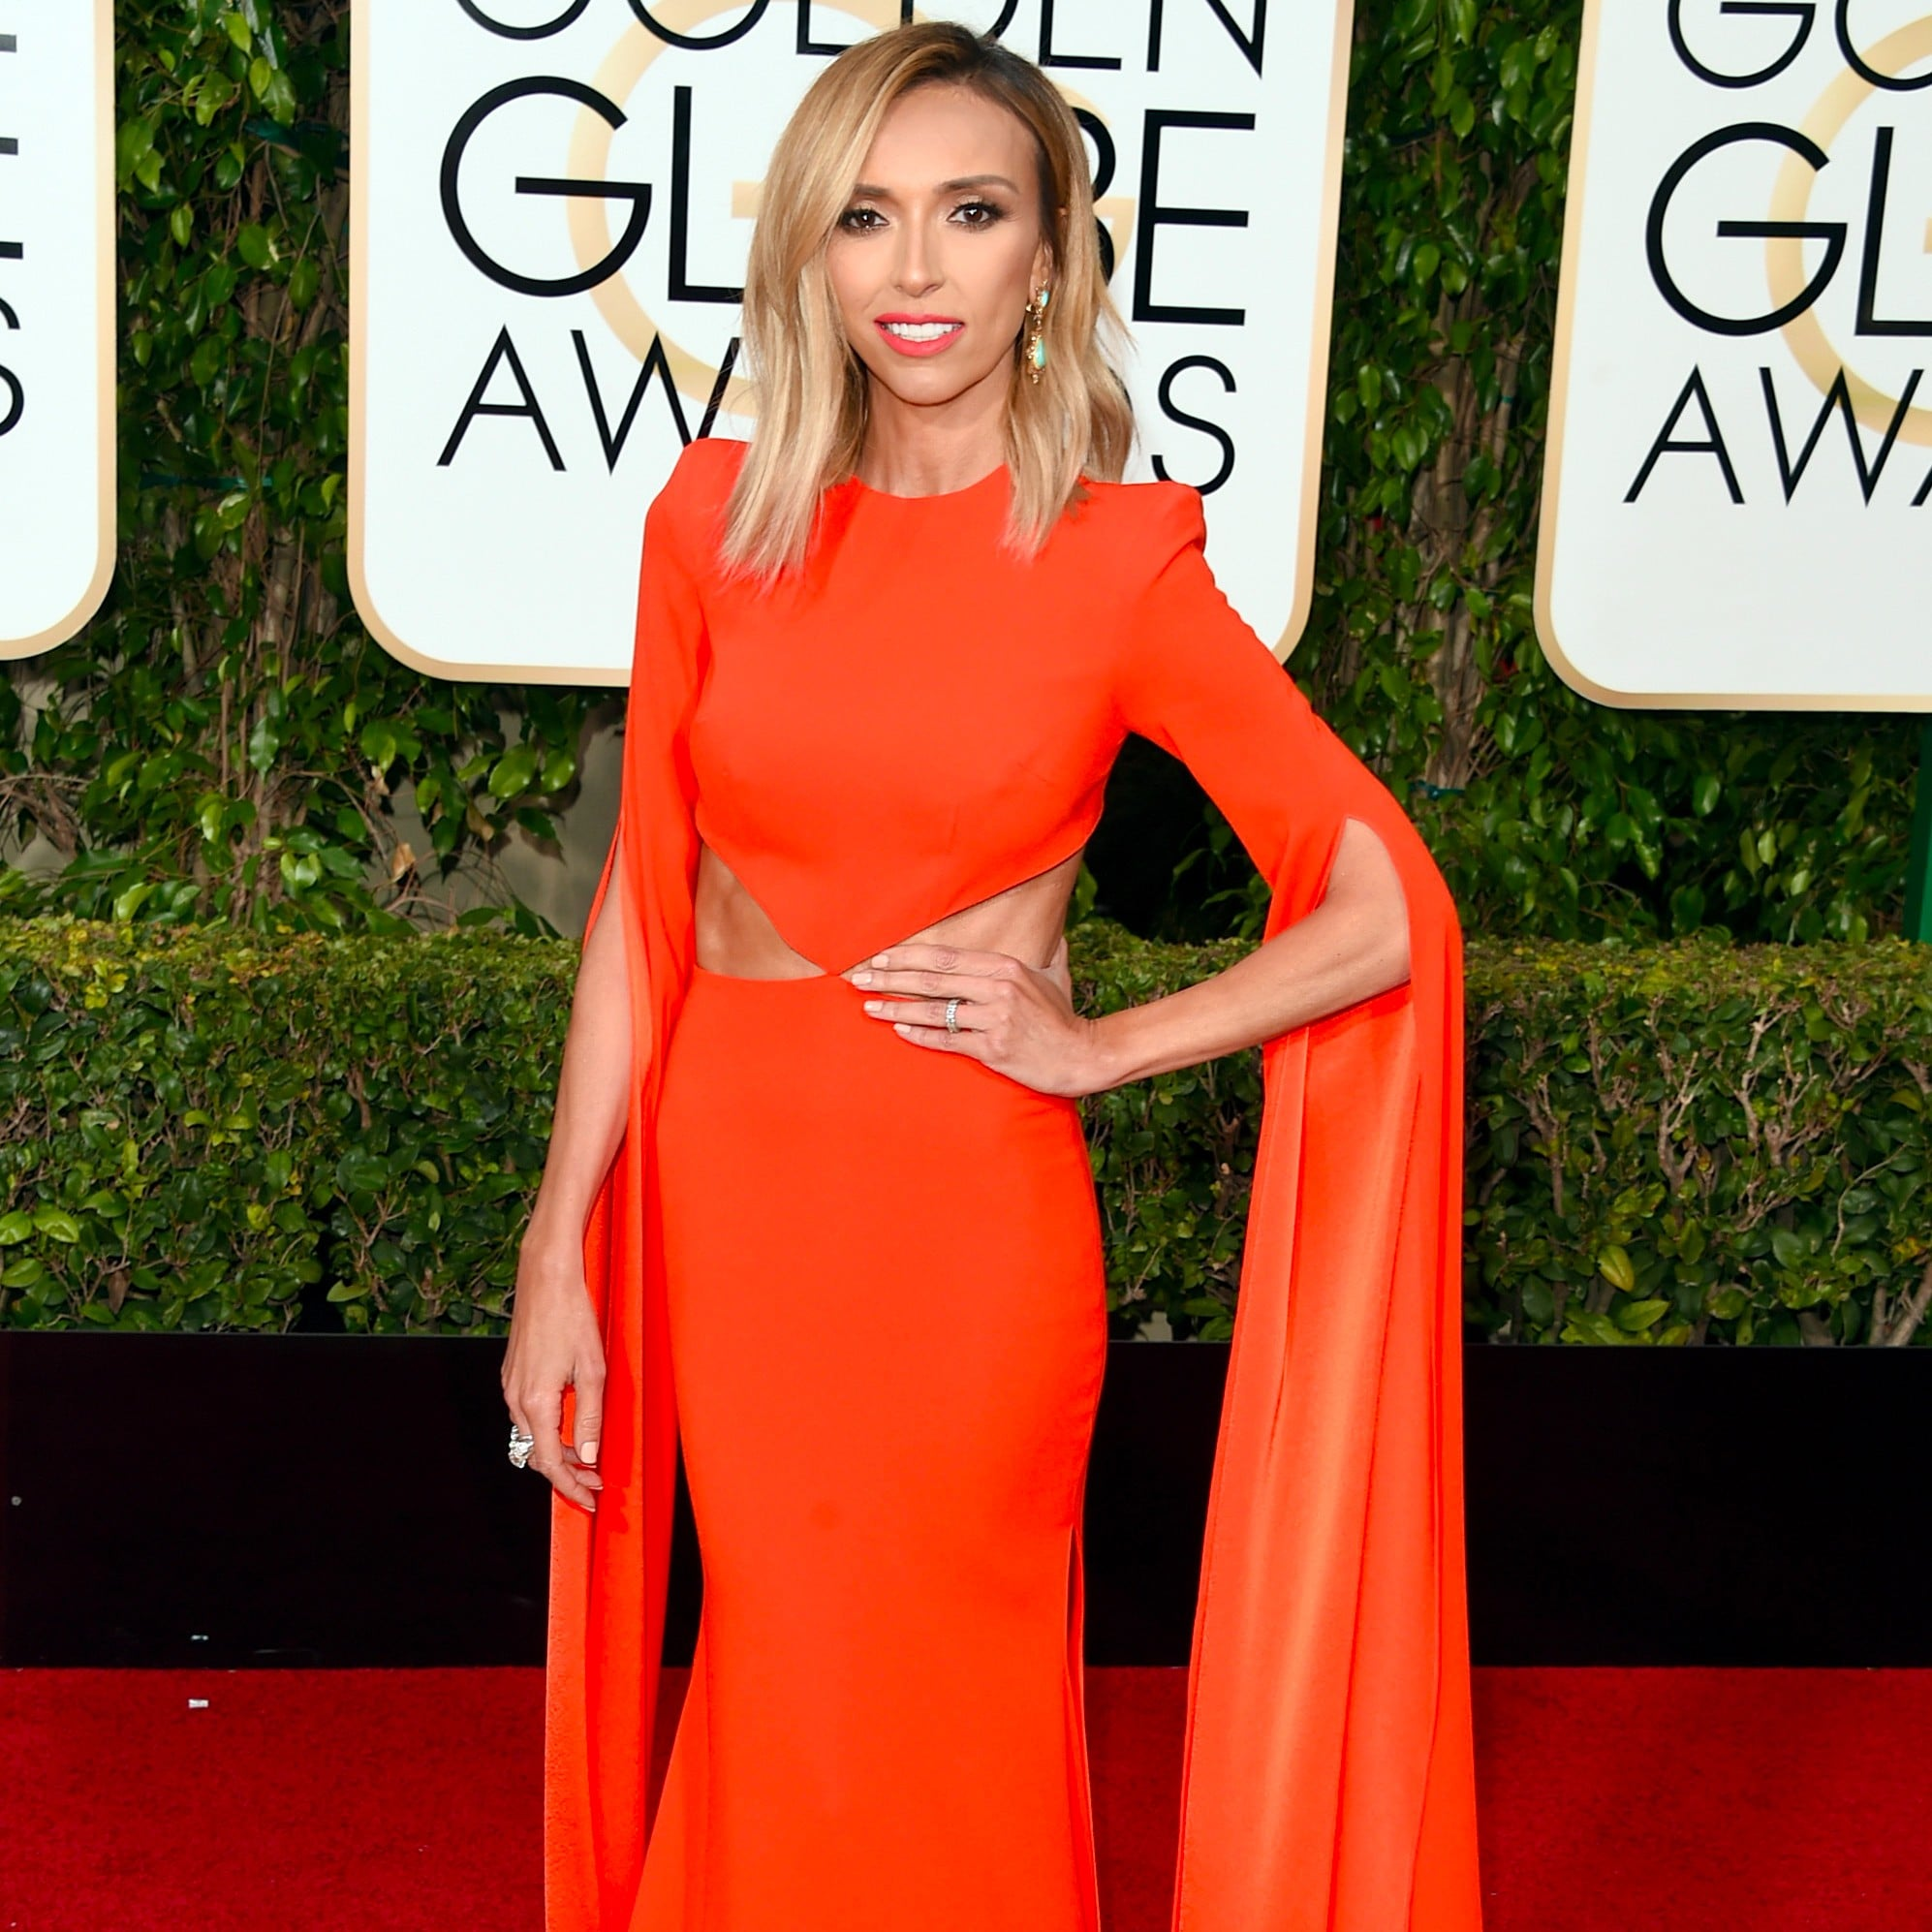 giuliana rancic instagram about being cancer free 2016 | popsugar